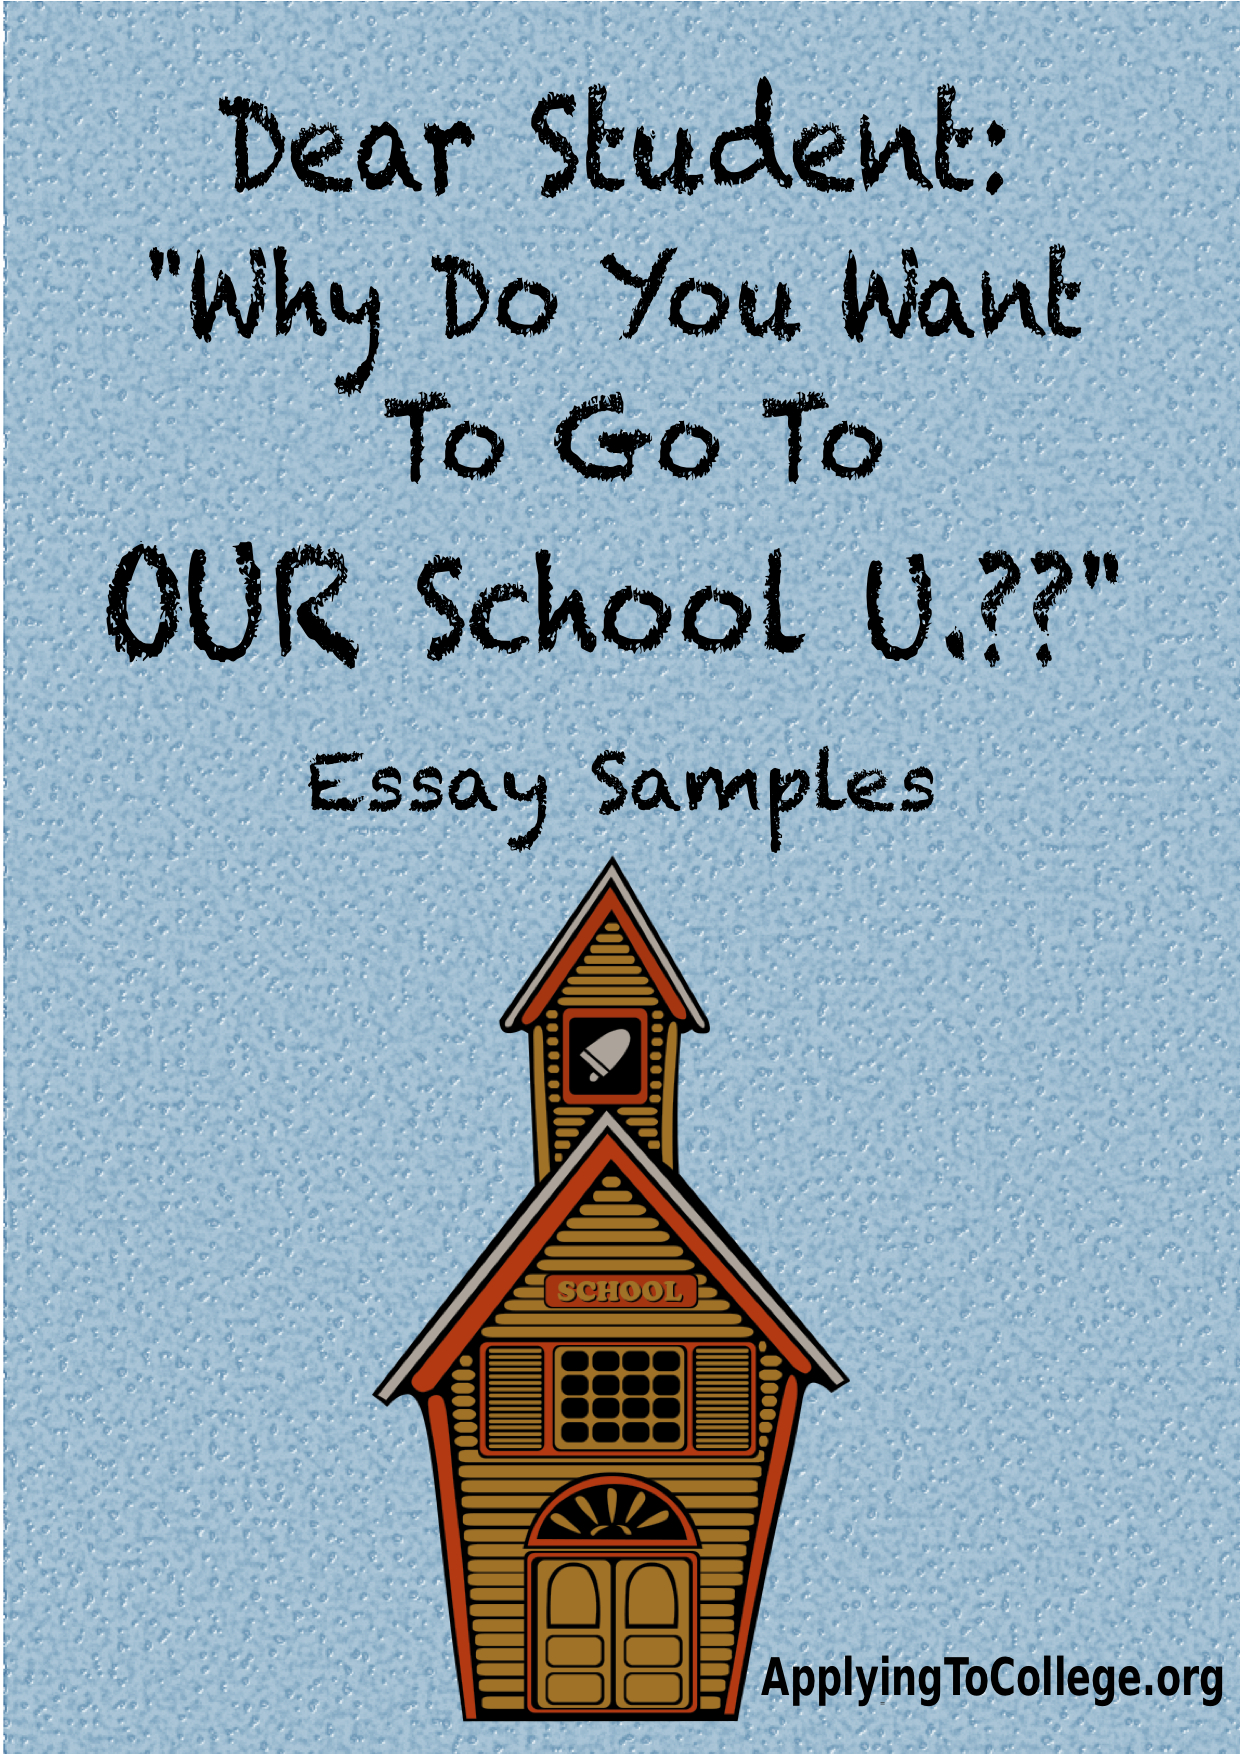 Write an Essay on Your School